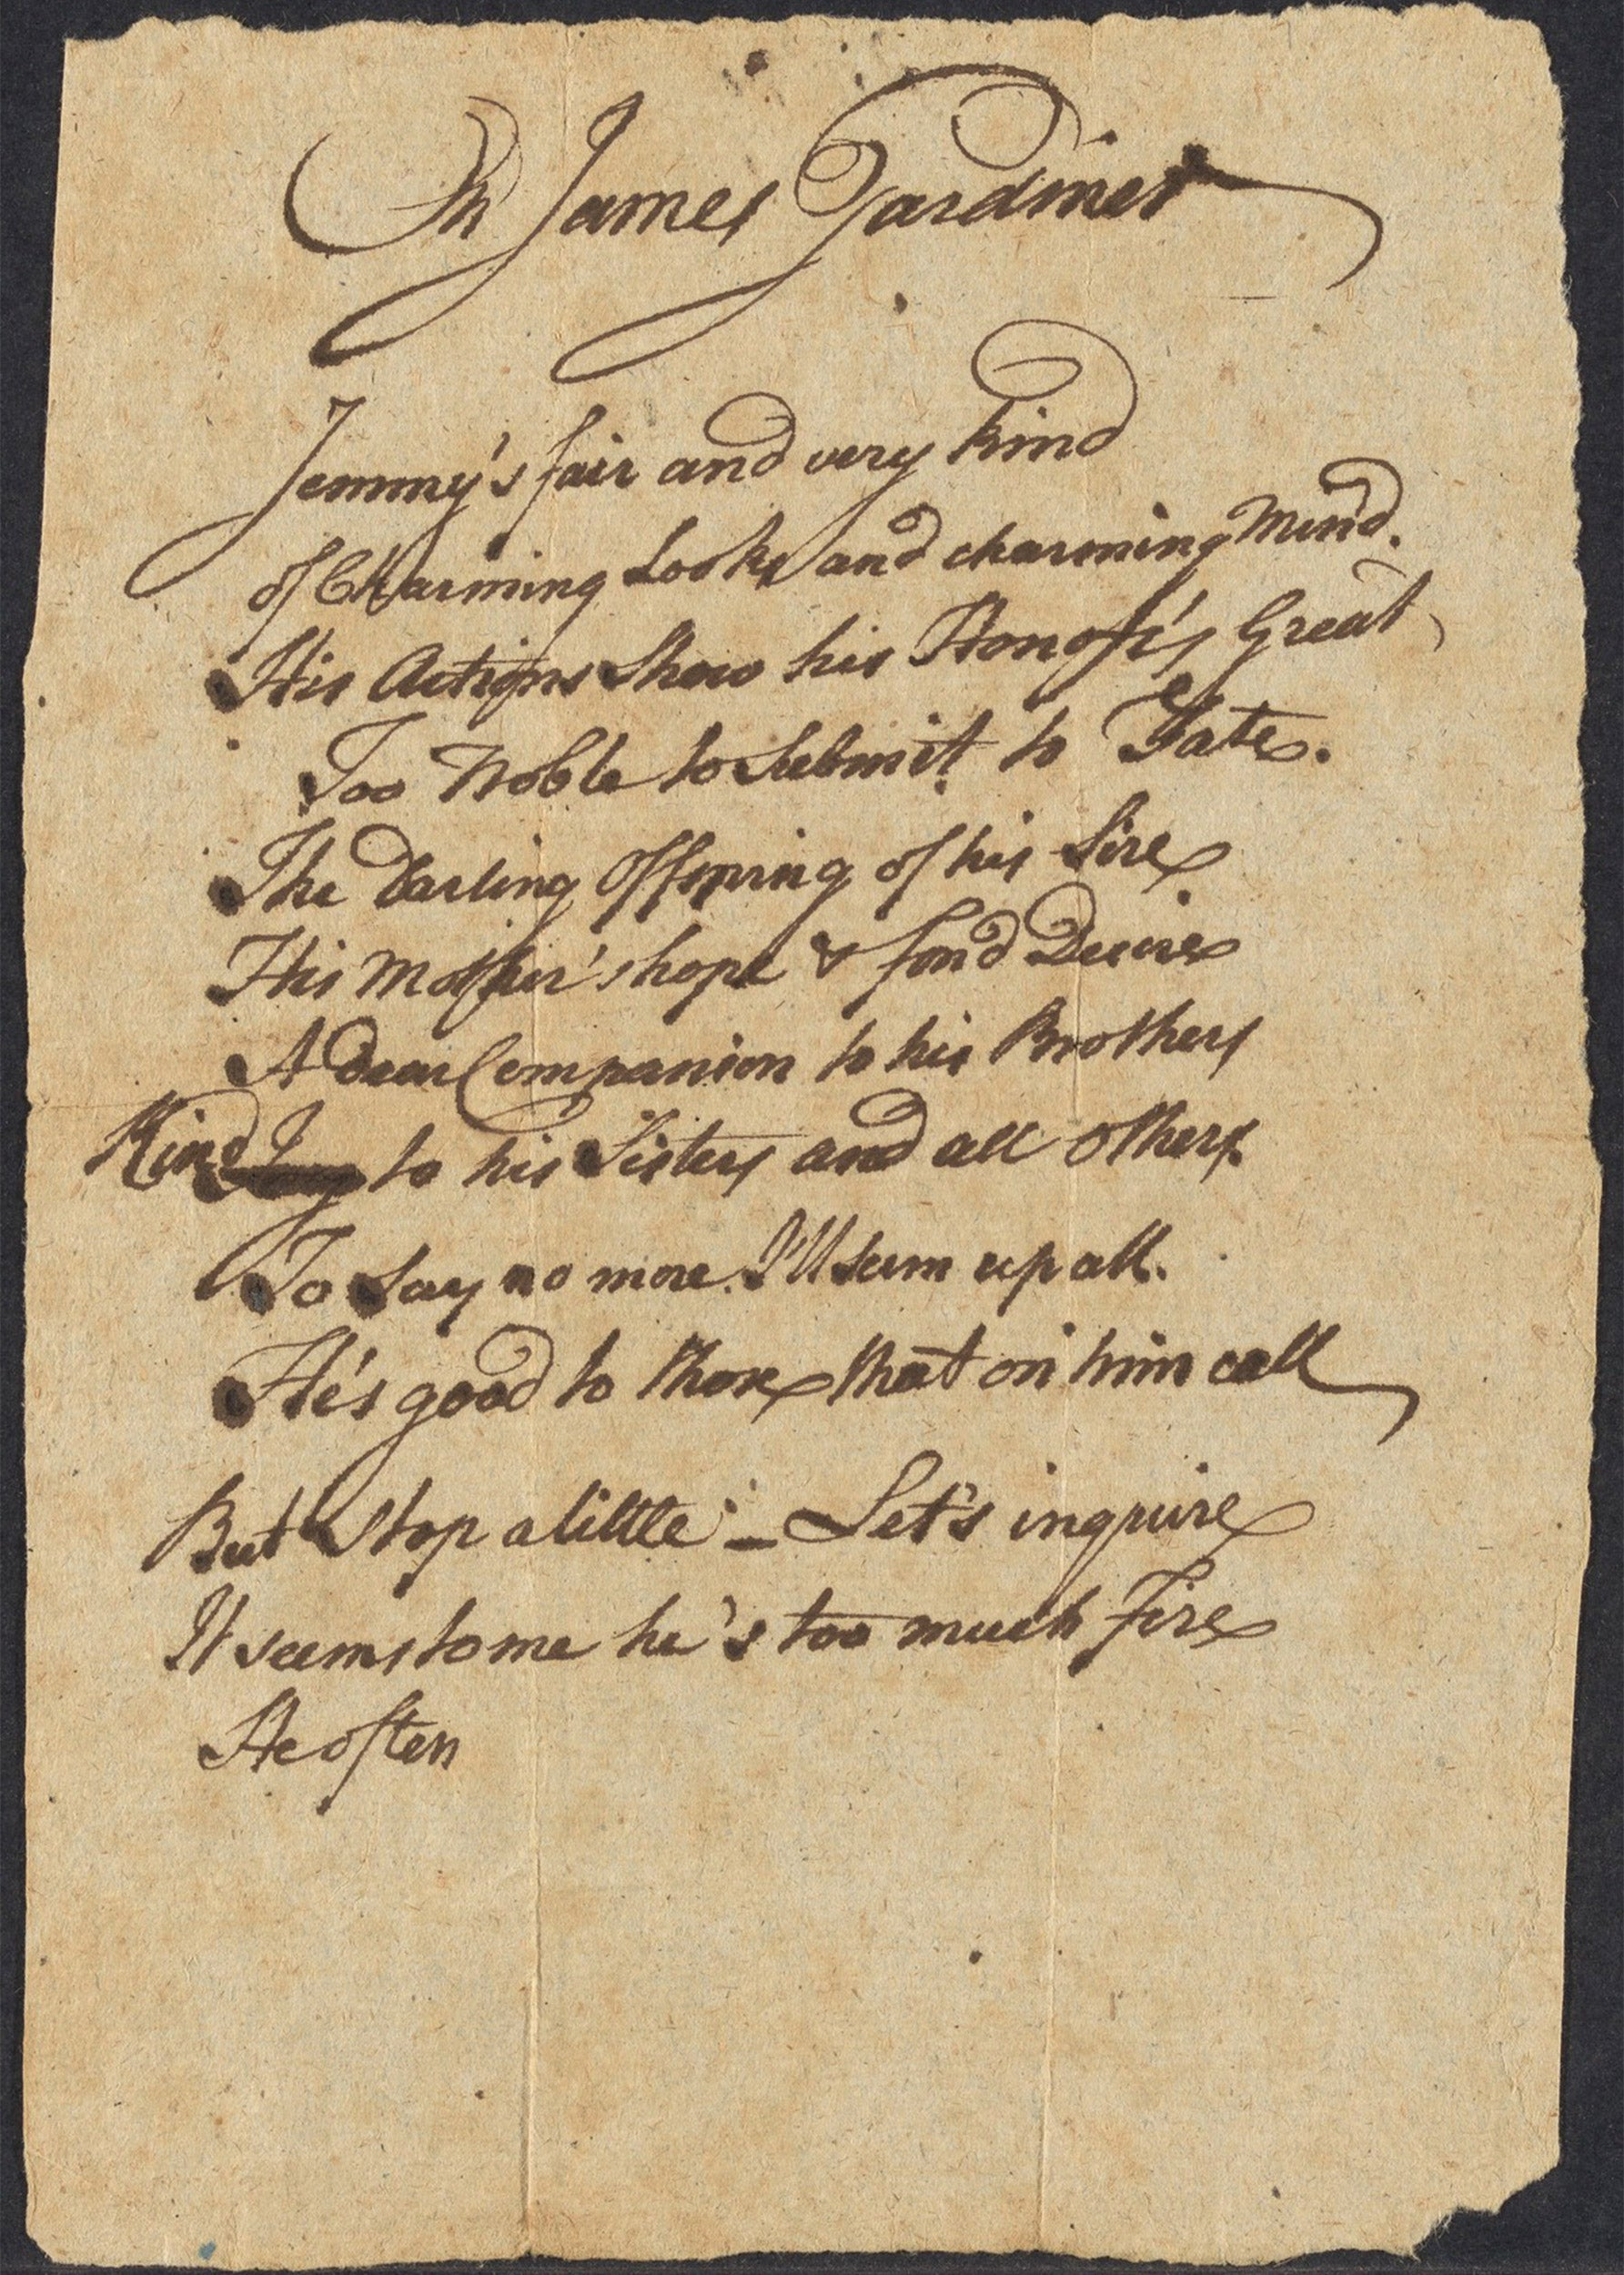 A poem from mid-1700s.